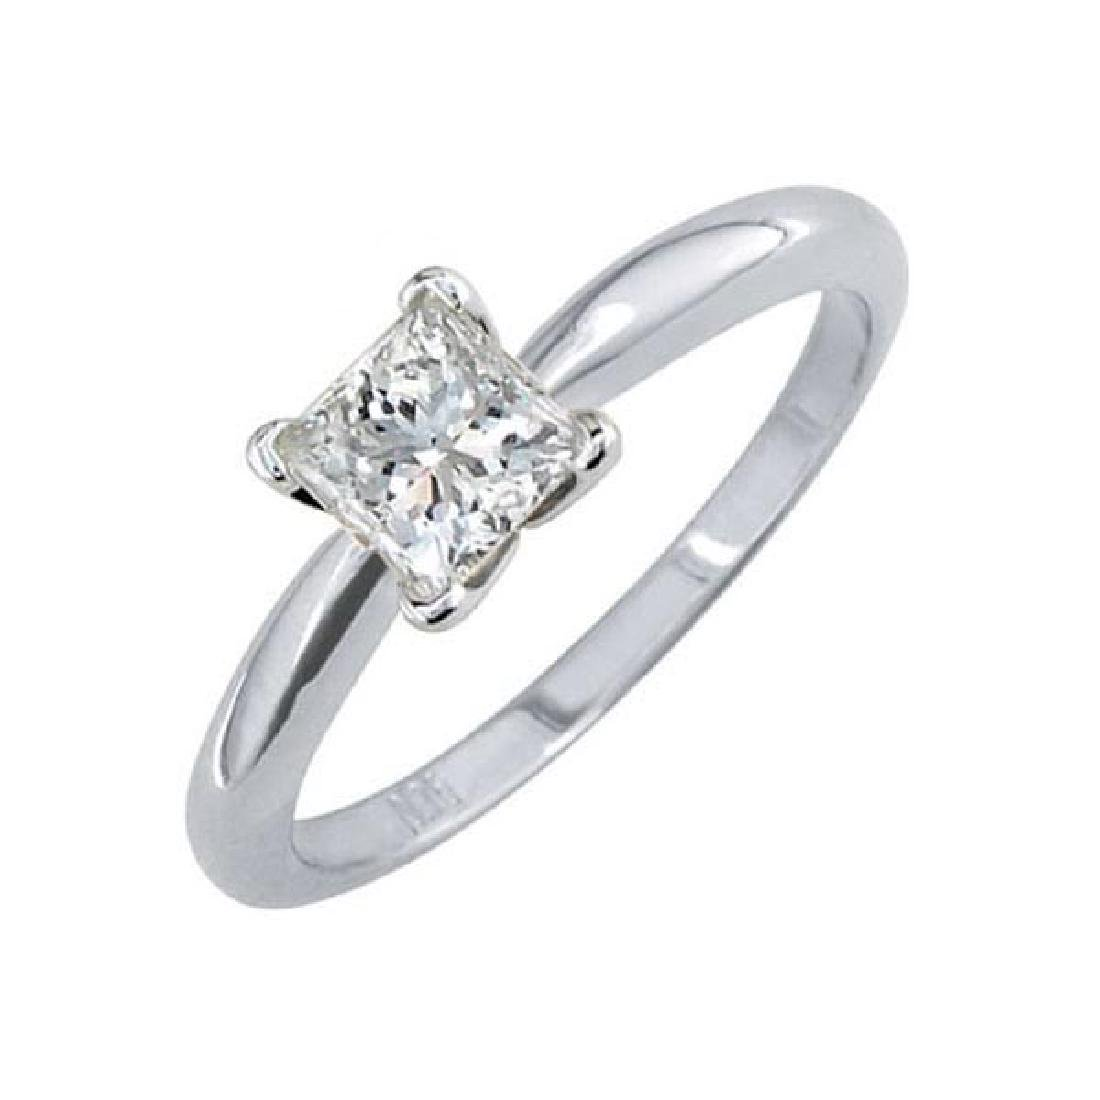 Certified 0.55 CTW Princess Diamond Solitaire 14k Ring